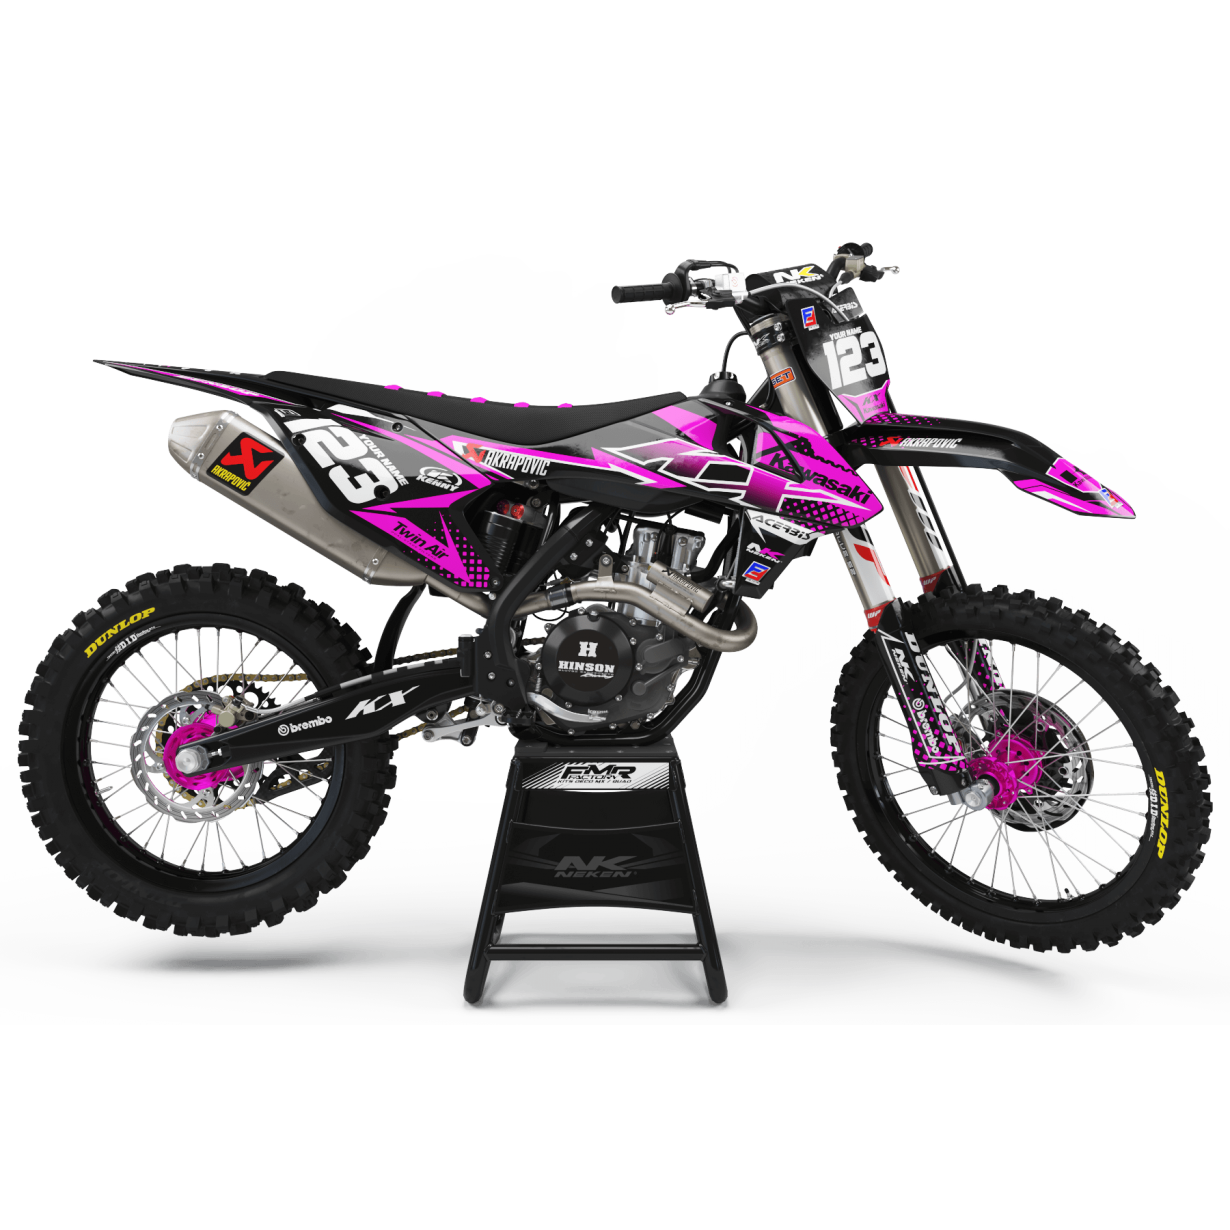 Kit déco Perso FACTORY kawasaki ENERGY MA33B3 rose